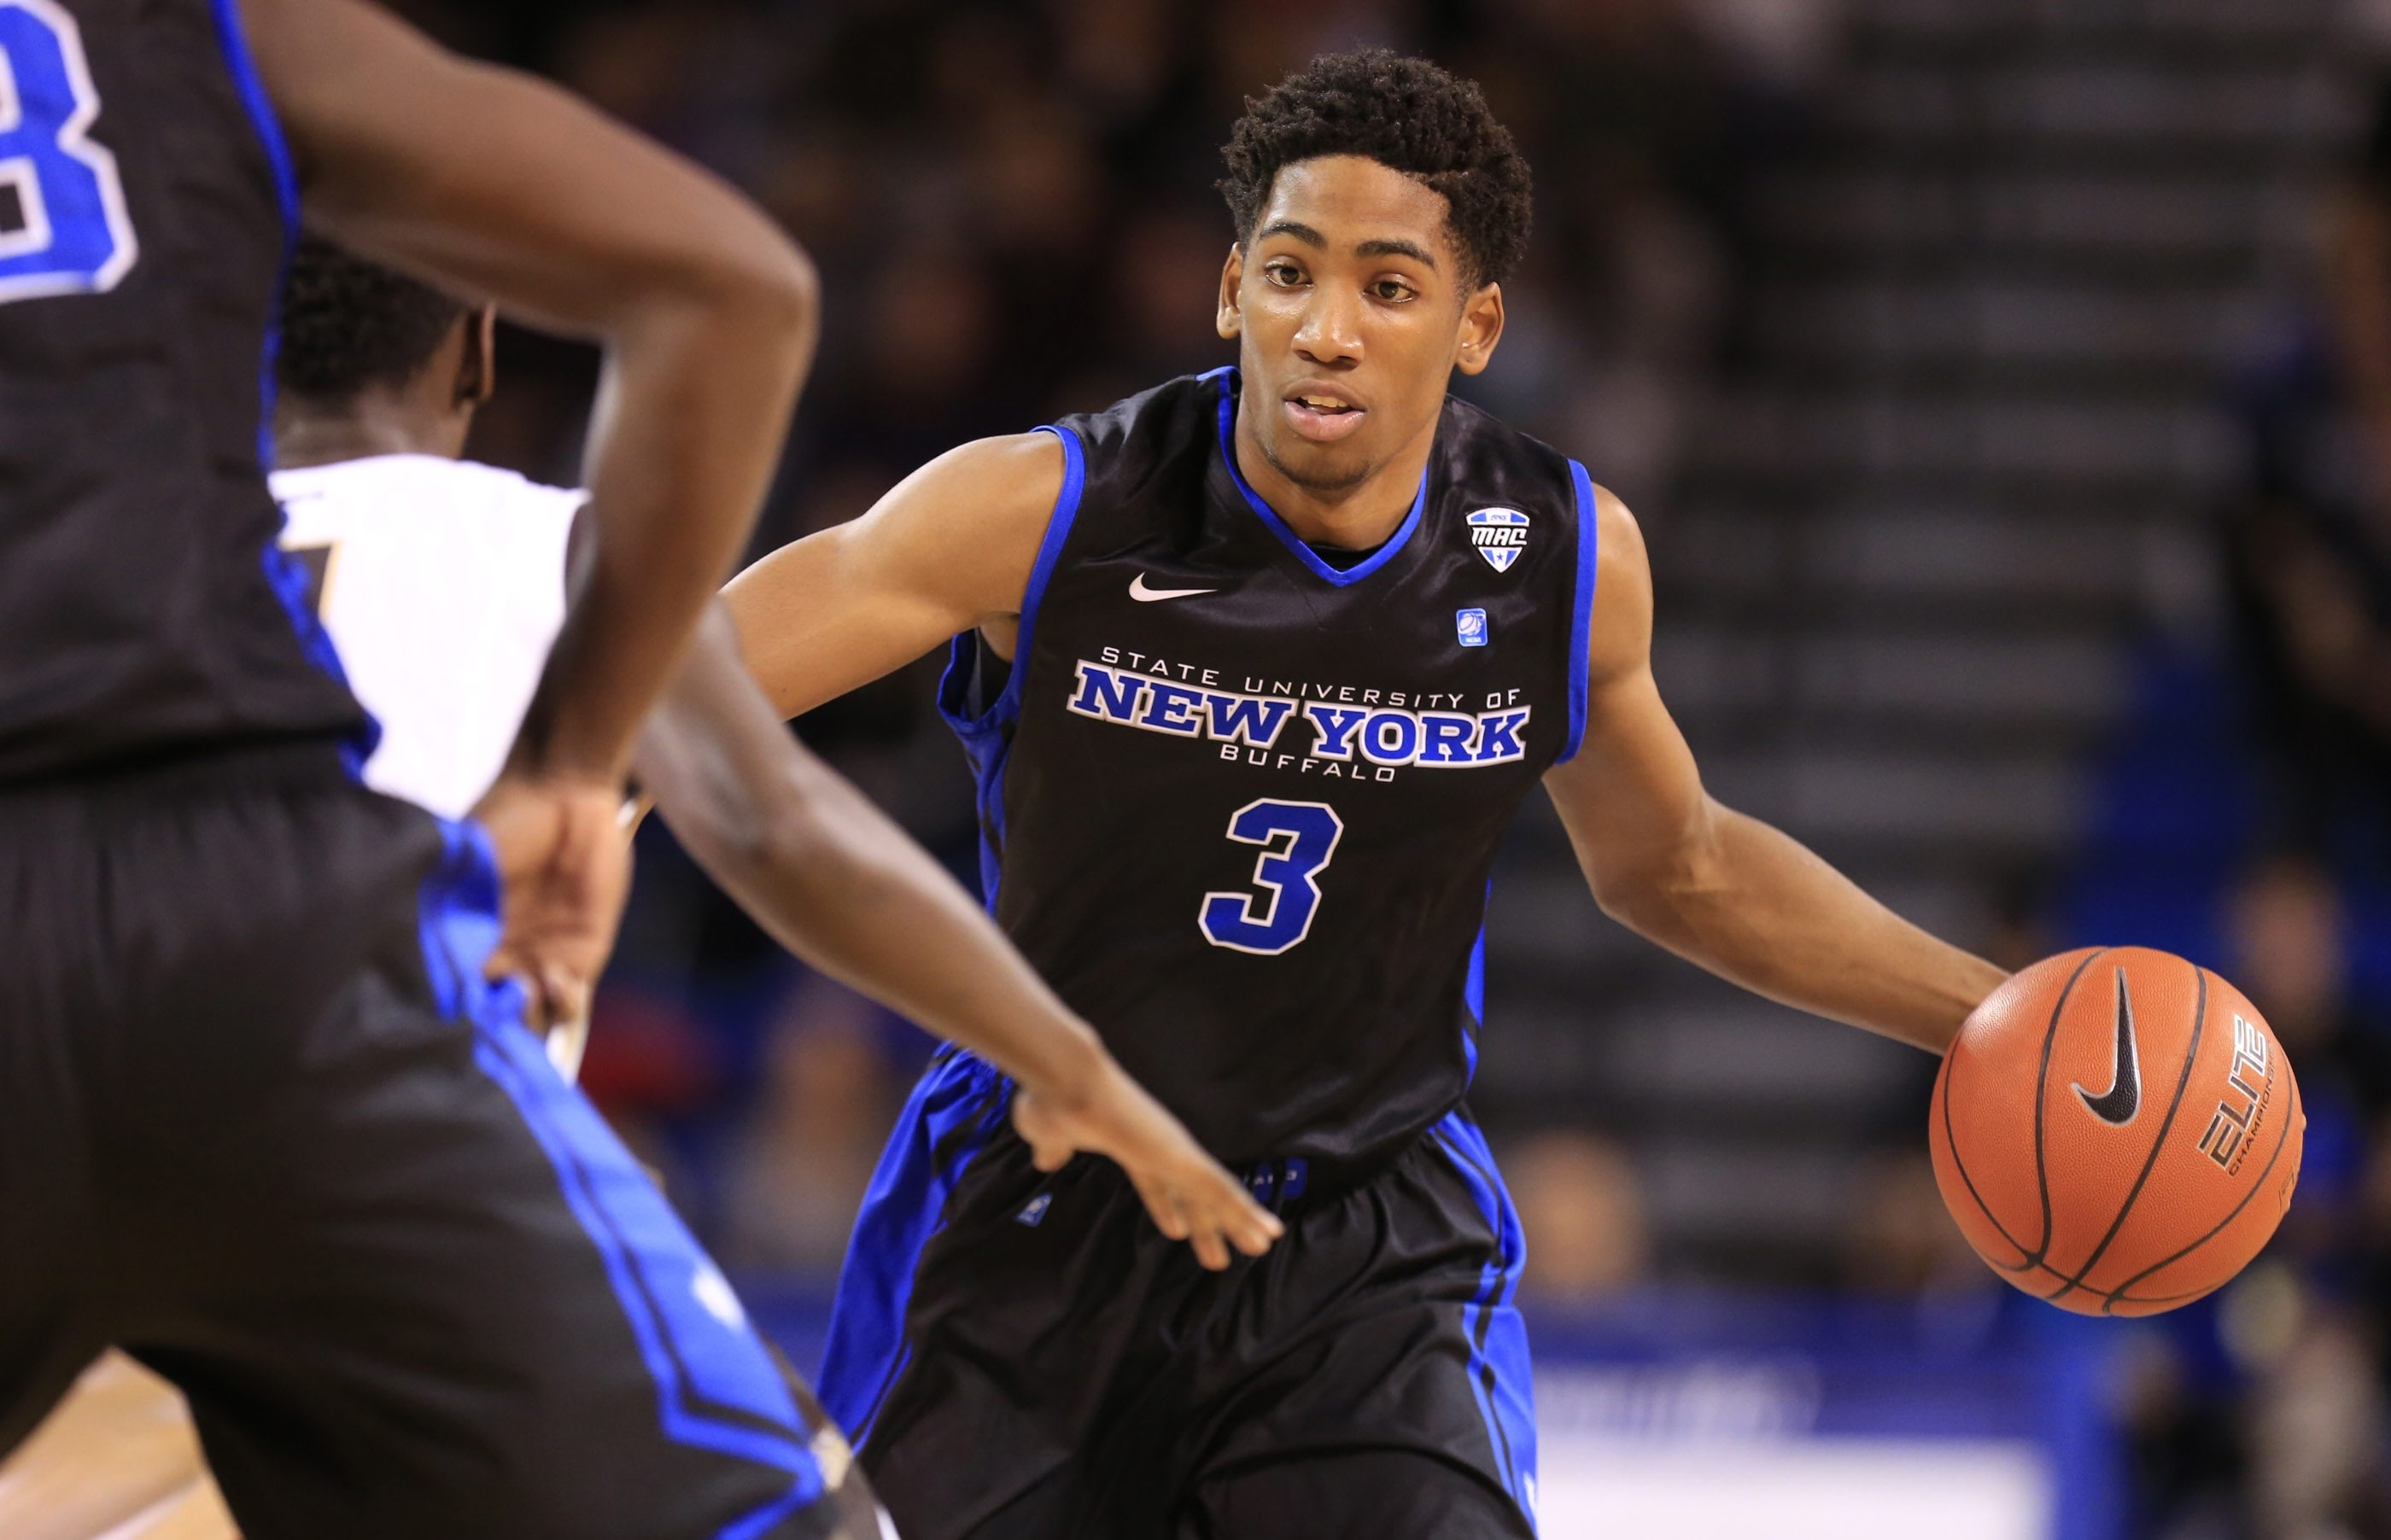 CJ Massinburg averages 11.3 points and 4.1 rebounds for UB and has scored in double figures in 11 of his past 14 games.